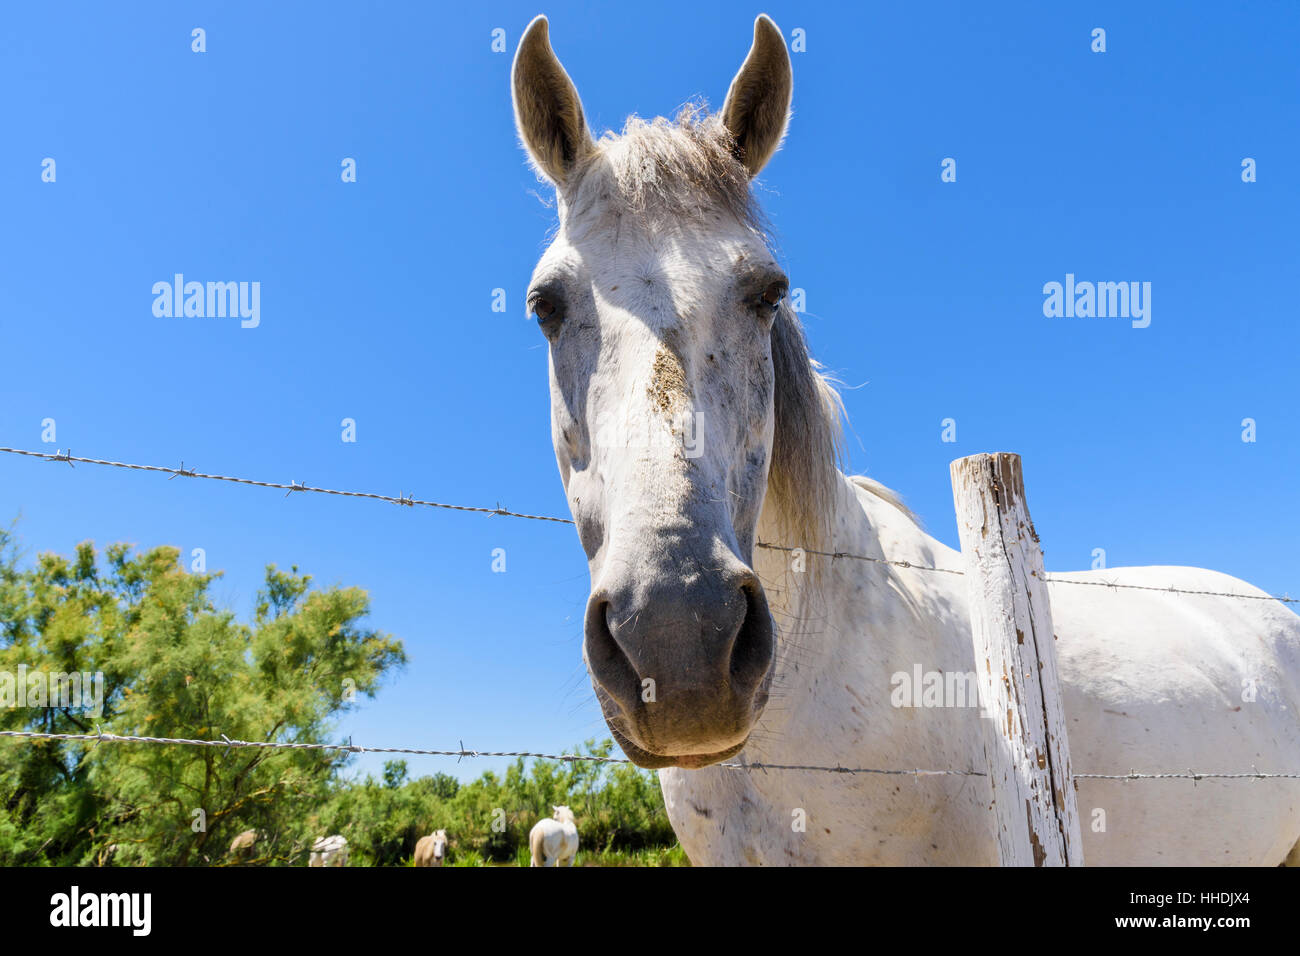 Camargue Horse leans over a fence in the Camargue Natural Regional Park in the Rhône Delta, Southern France - Stock Image